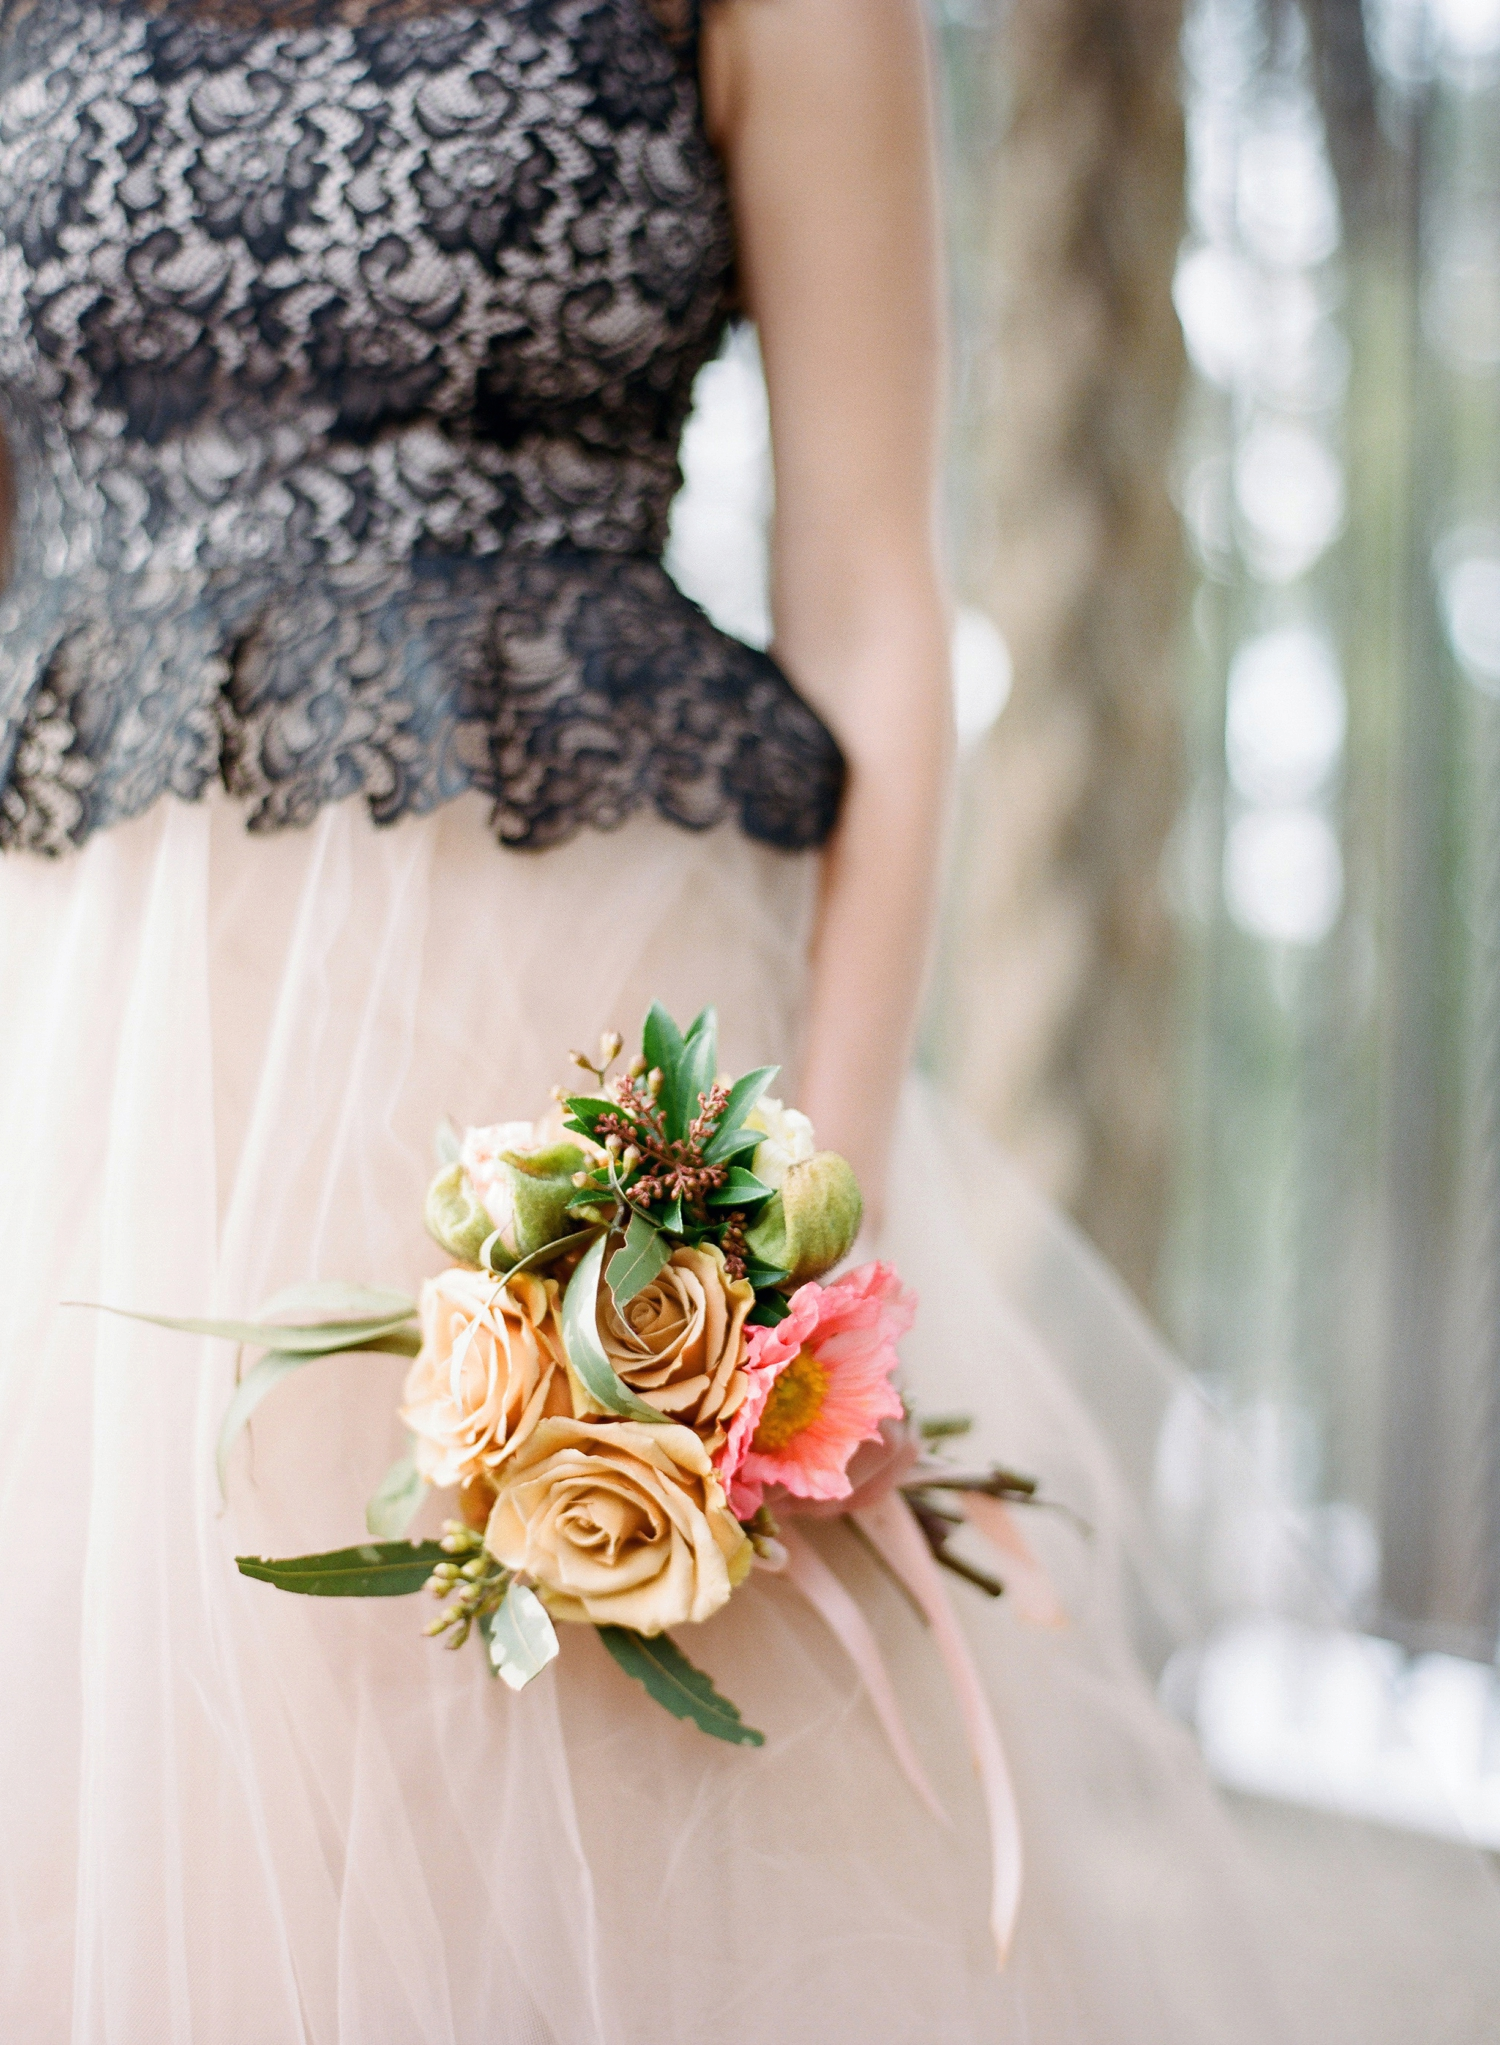 nhan khanh blush and black bridal dress